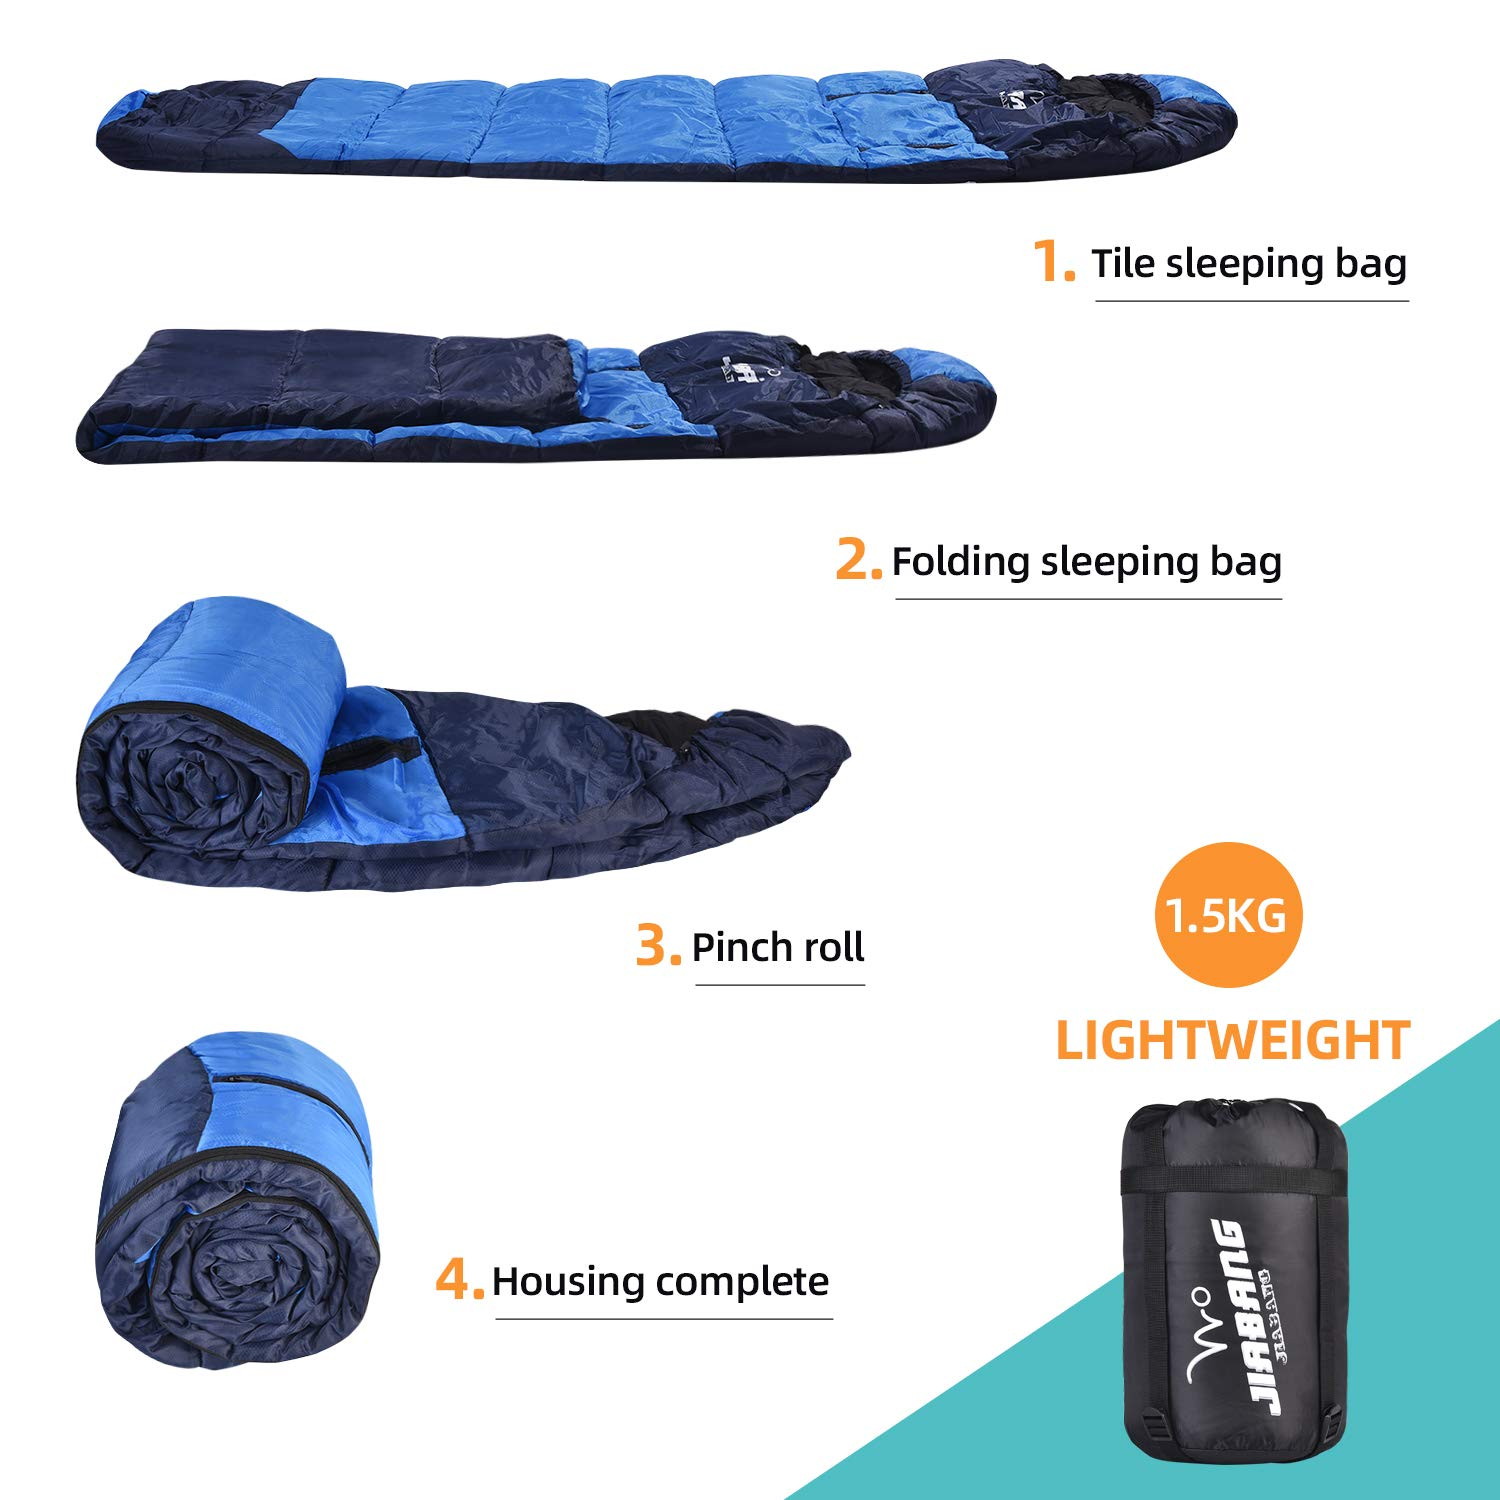 jiabang 1.5 KG Sleeping Bags for Adults 3-4 Seasons Camping-Extra Large Warm Lightweight Mummy Sleeping Bag with Compression Sack Ideal Gear for Hiking Backpacking